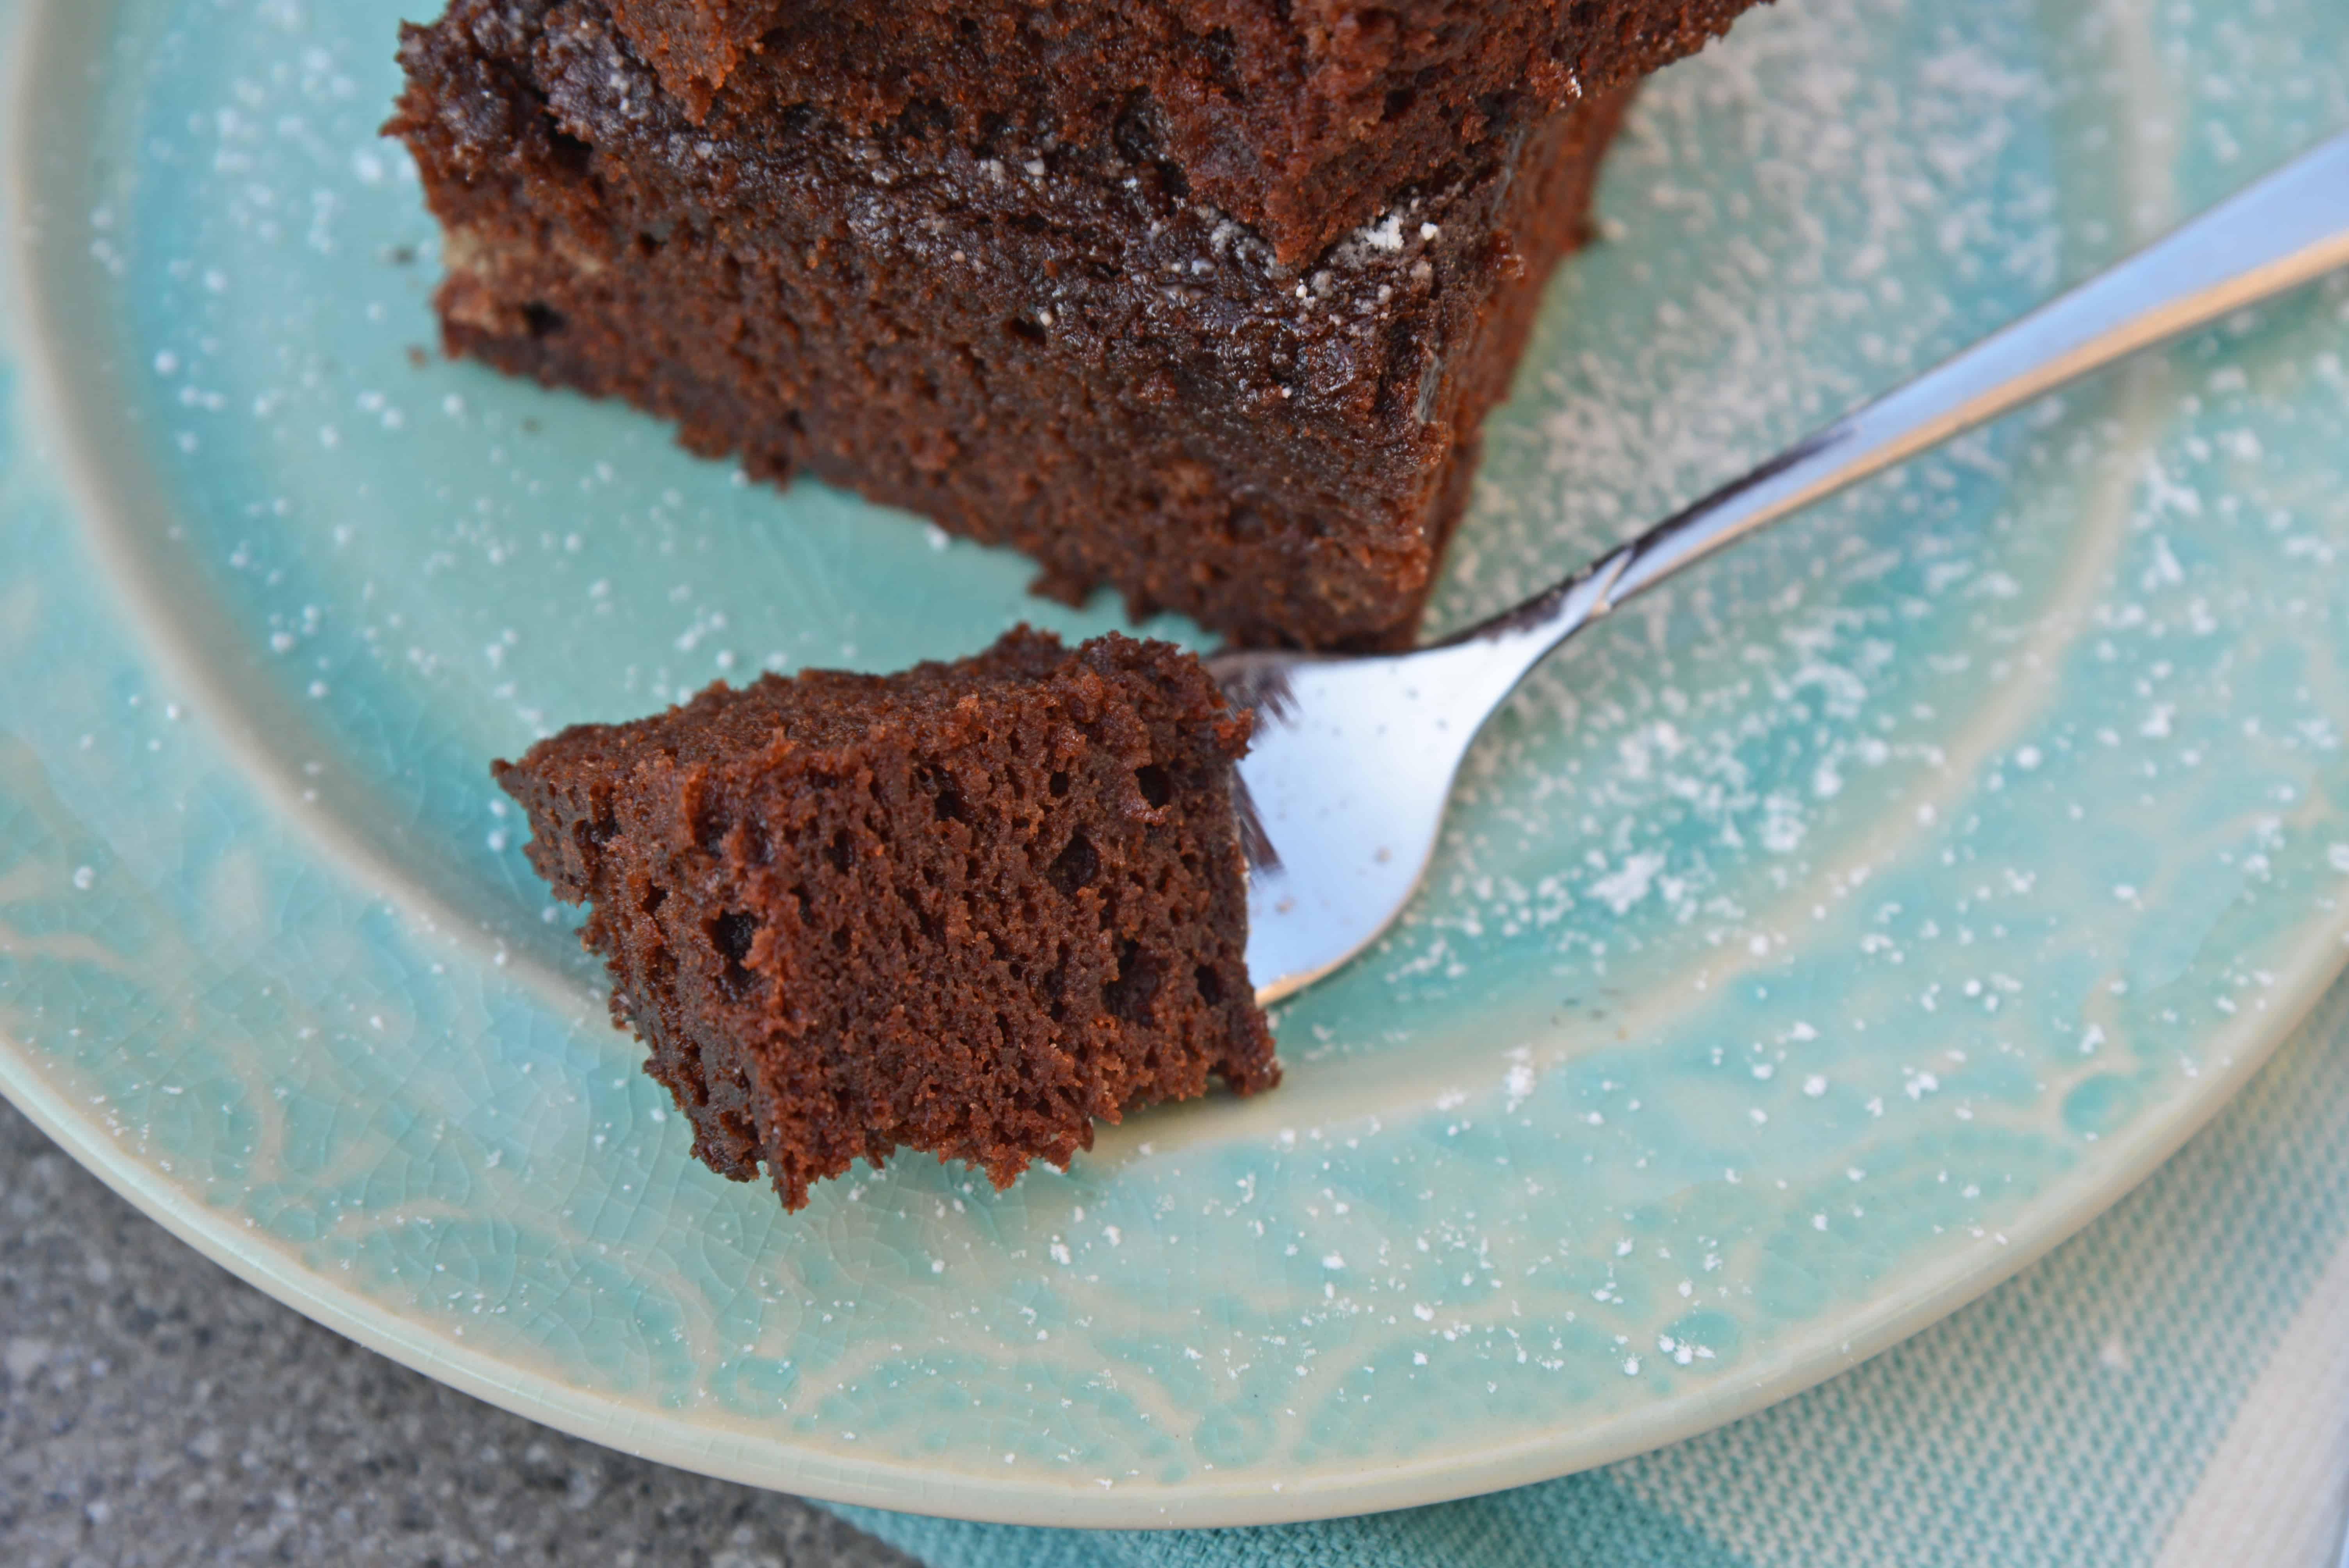 This Chocolate Beet Cake hides an entire serving of veggies inside a moist, rich chocolate cake! This is the best beet cake that you will ever make! #chocolatecakerecipe #beetcake #chocolatebeetcake www.savoryexperiments.com